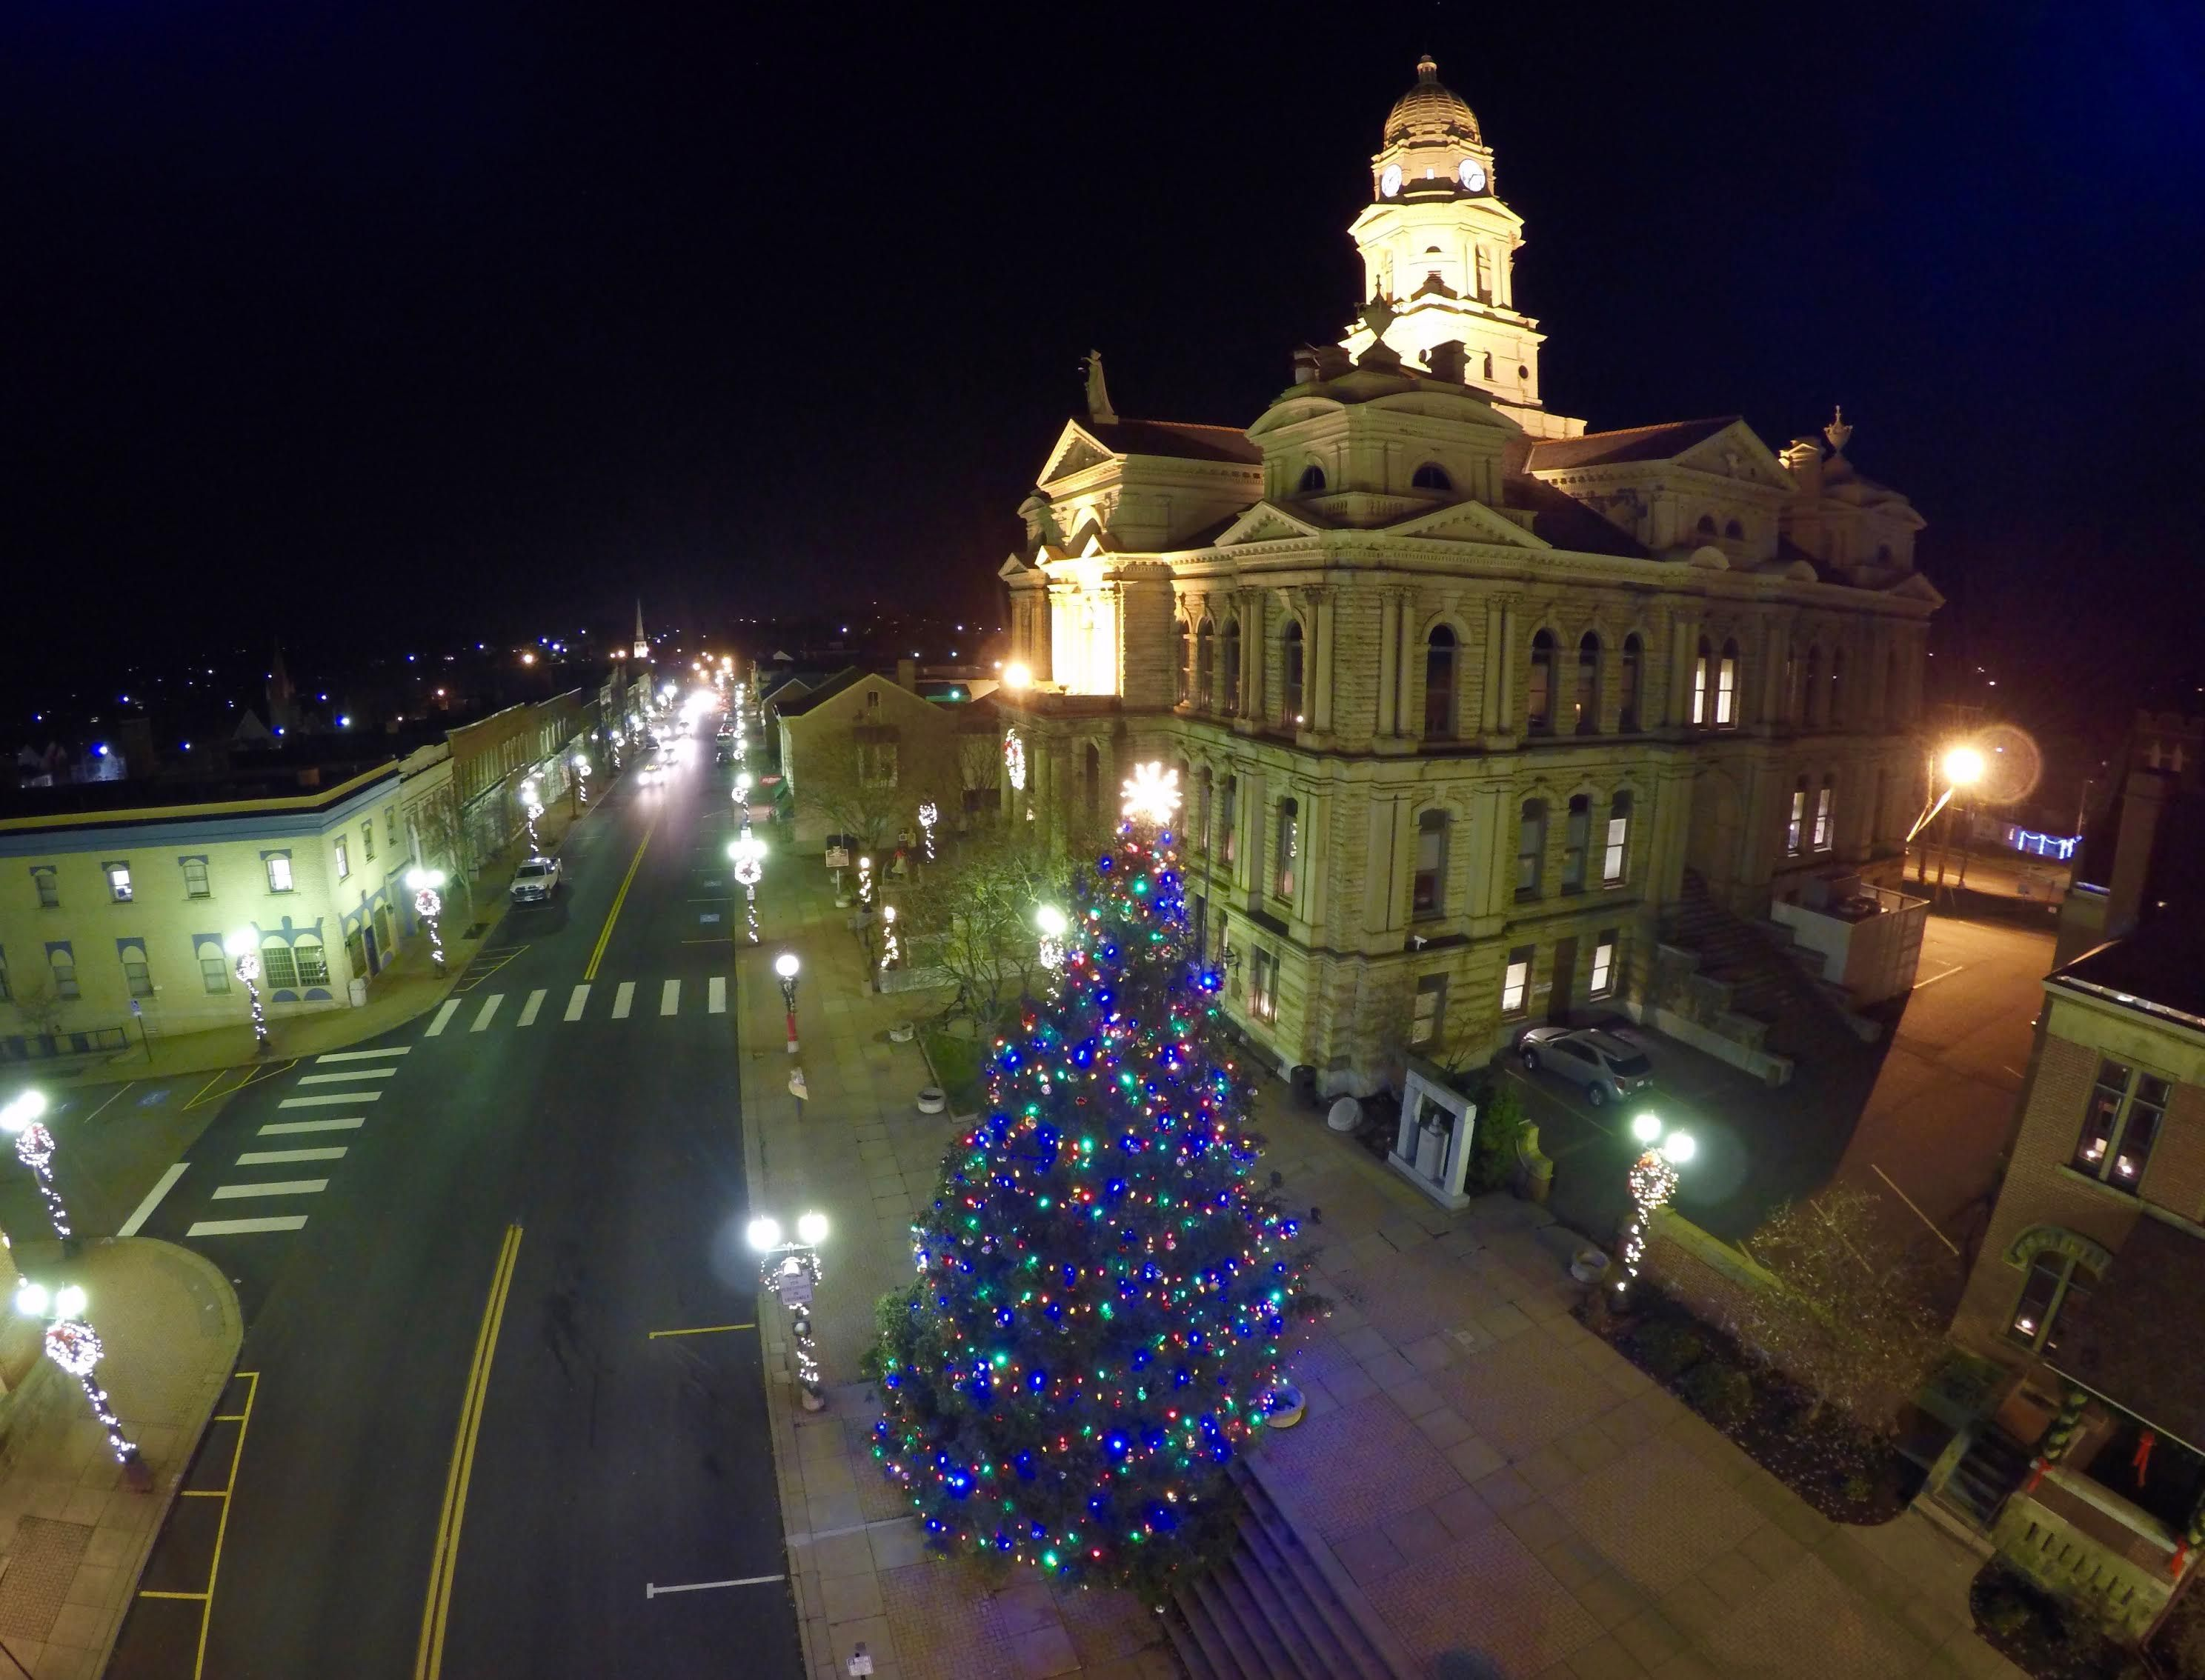 Aerial drone photography services ohio travel drone